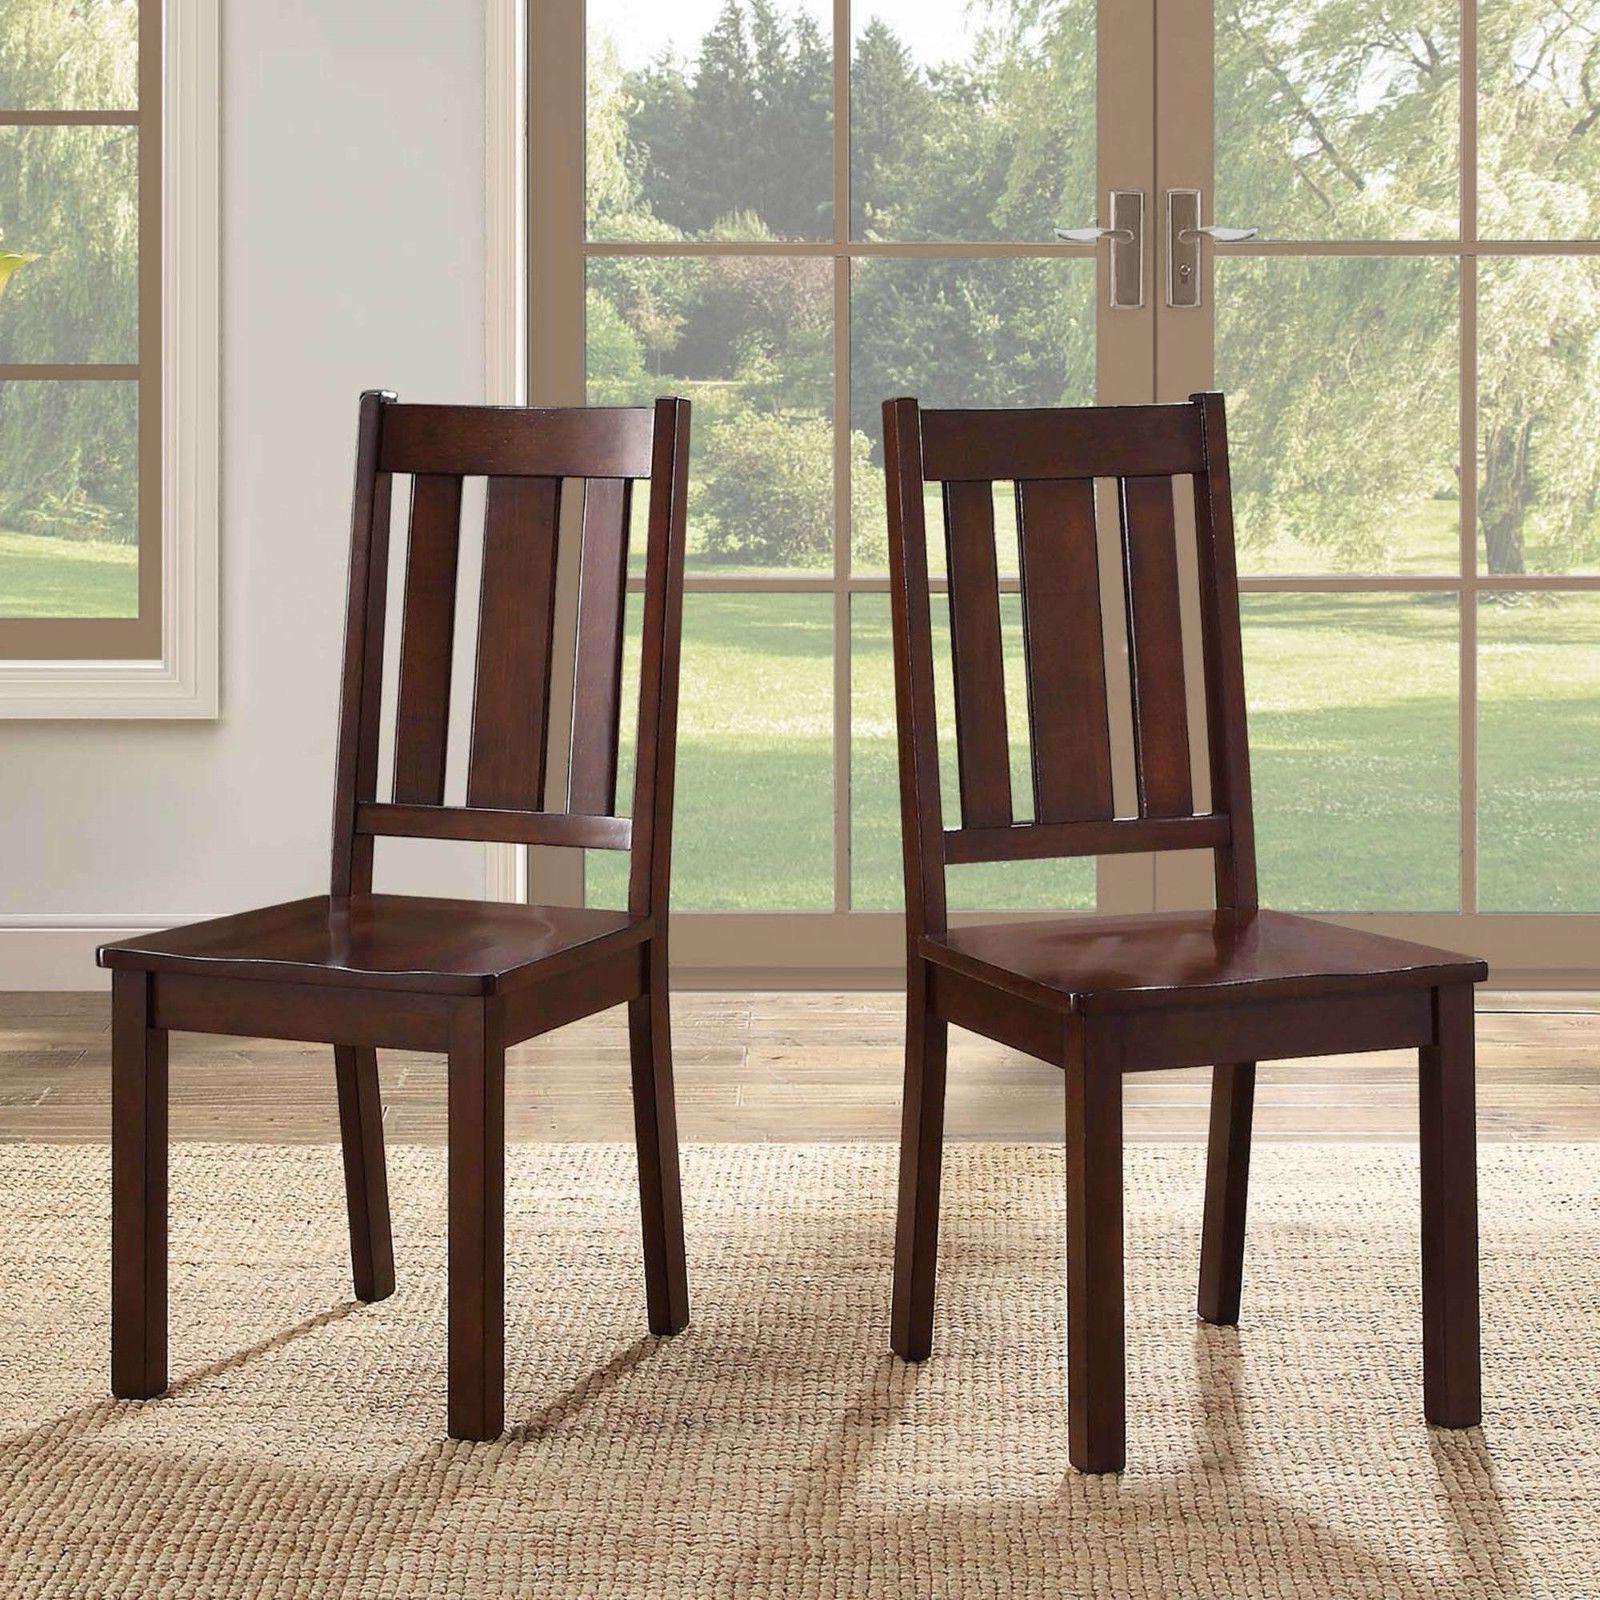 7 Piece Chairs Classic Style Solid